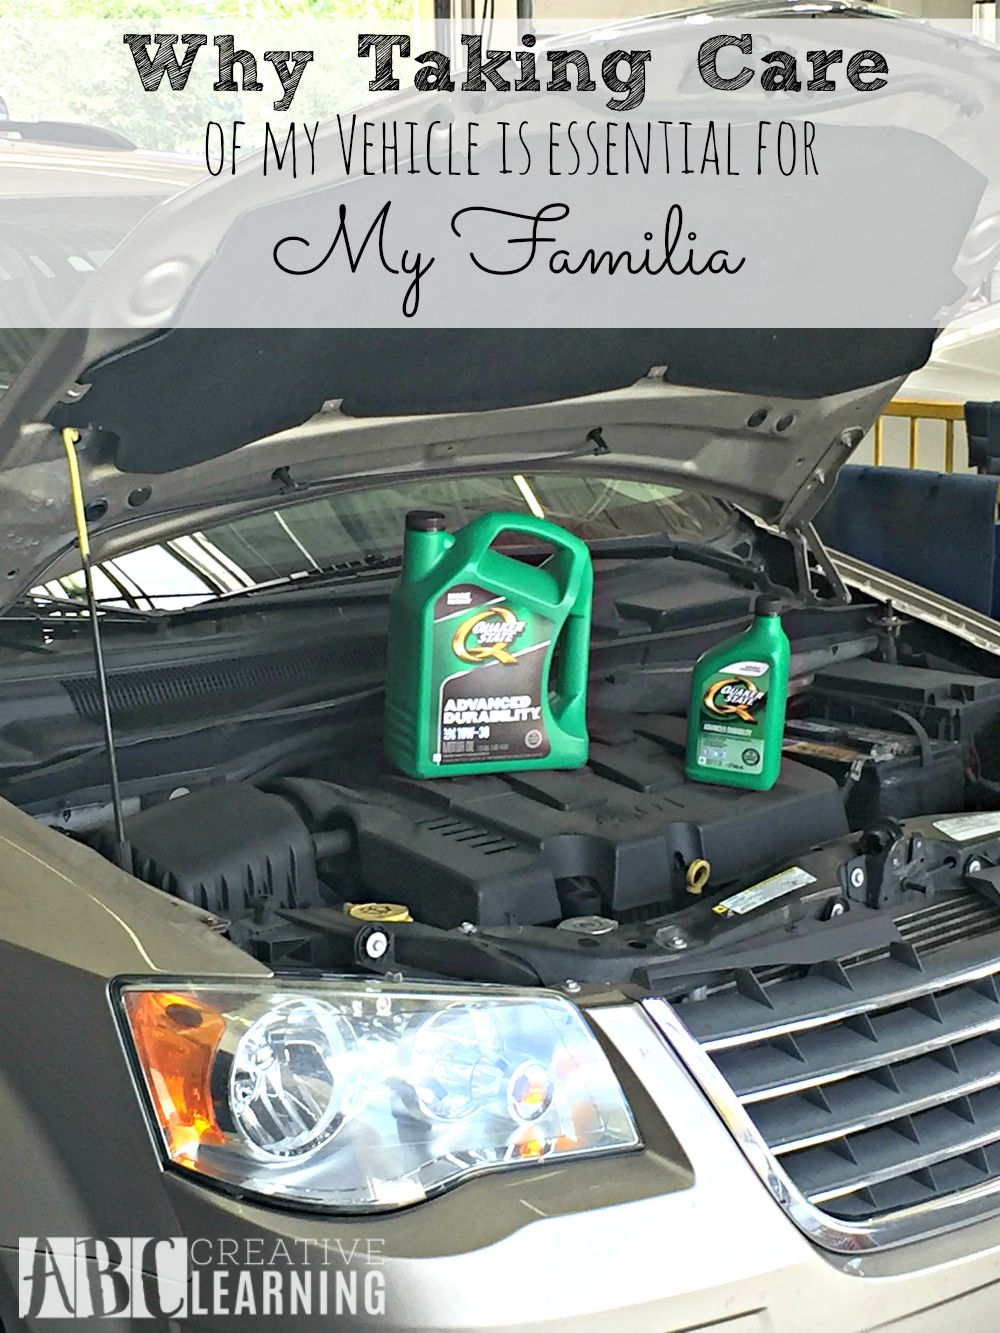 Why Taking Care of My Vehicle is Essential For My Family